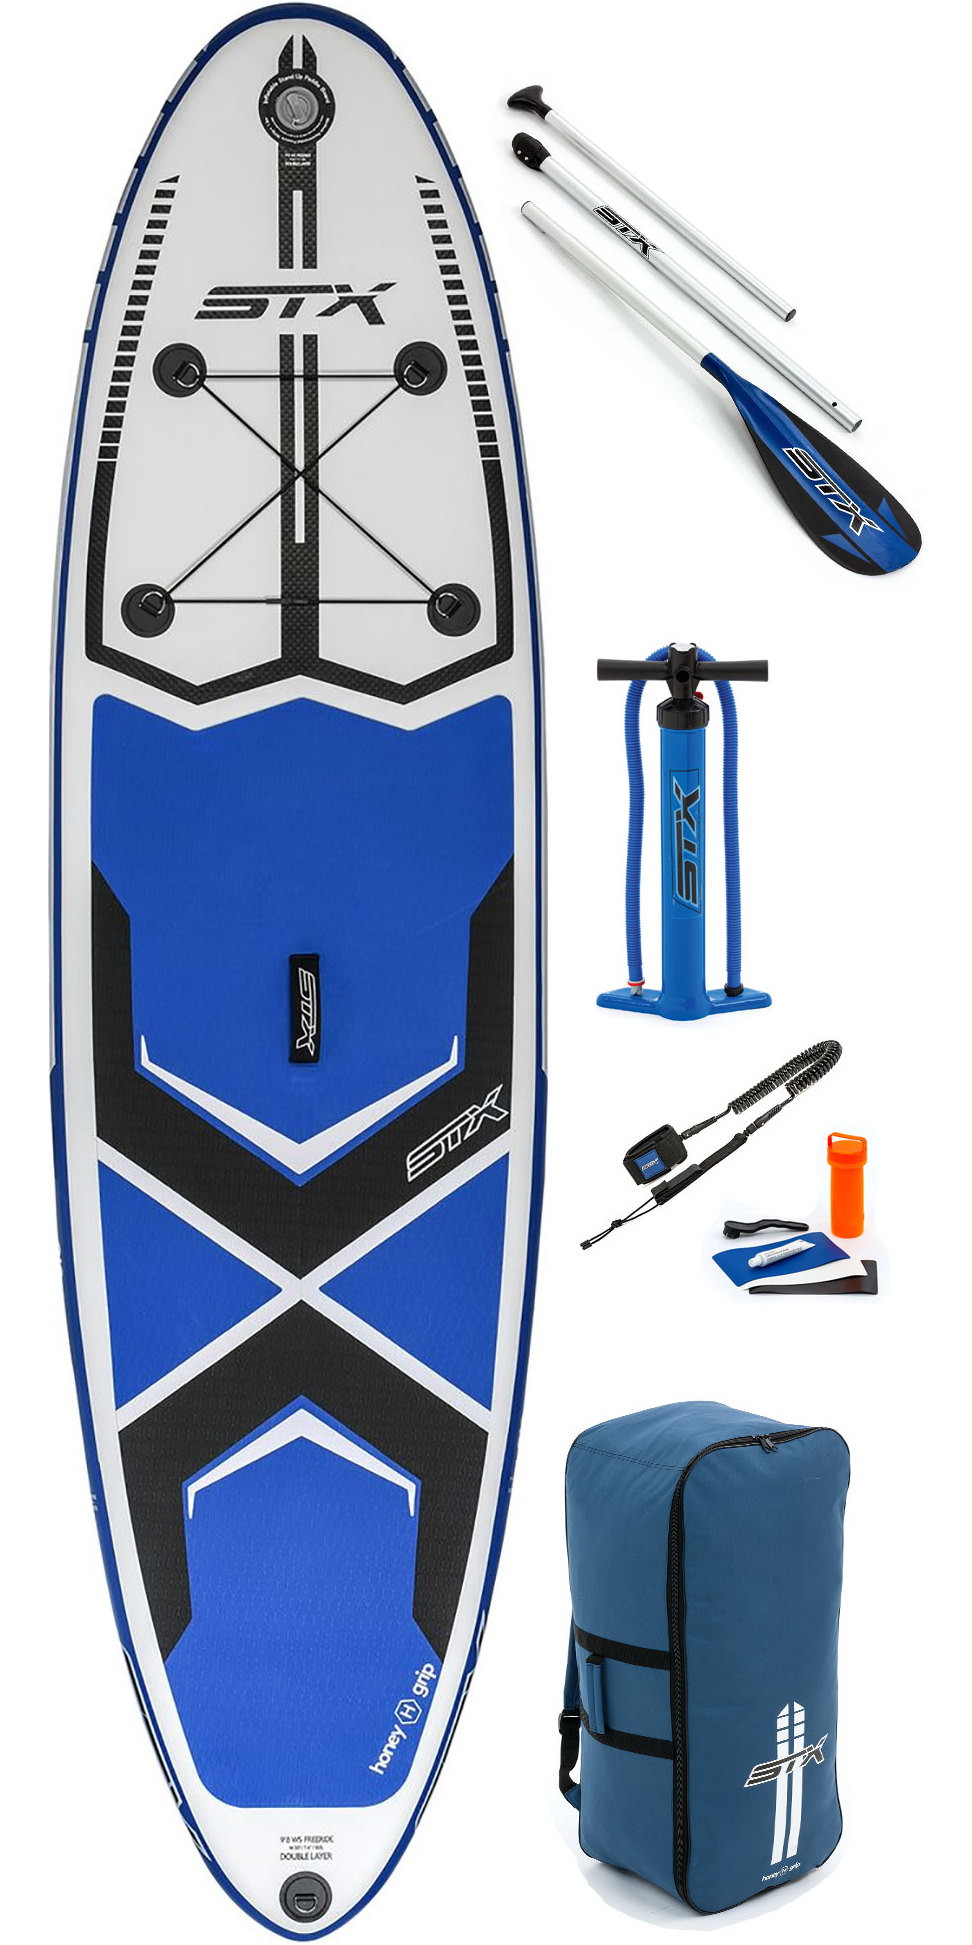 STX Glass 3-Piece Travel SUP Stand Up Paddle Boarding Paddle Blue Glass construction 3 Piece travel paddle